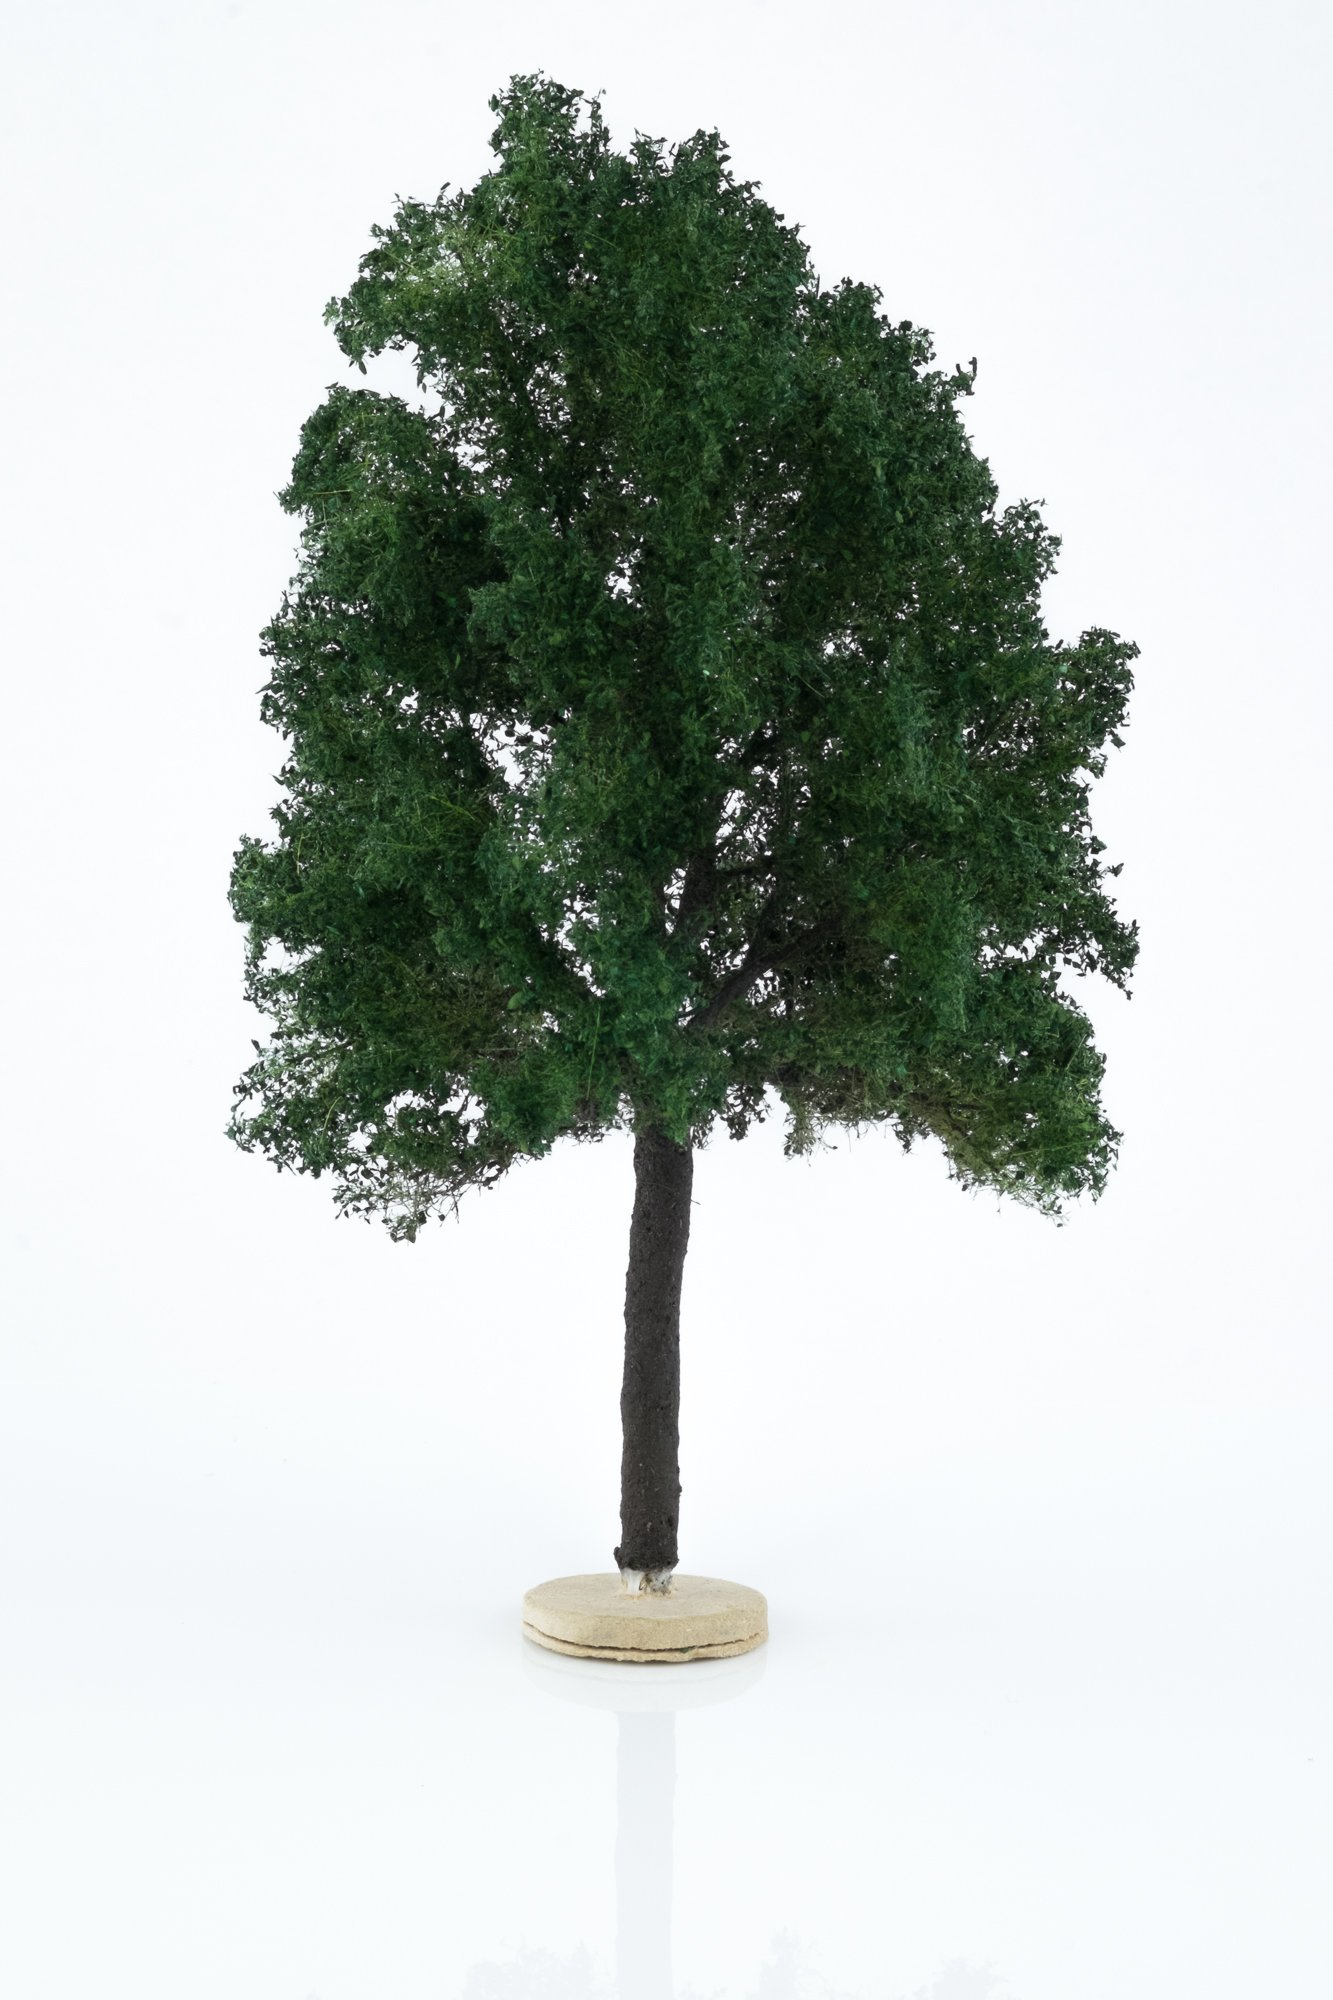 Hand-made, green, chestnut tree model. Size between 18 and 20 cm. Made from high quality model supplies by Primo Models.